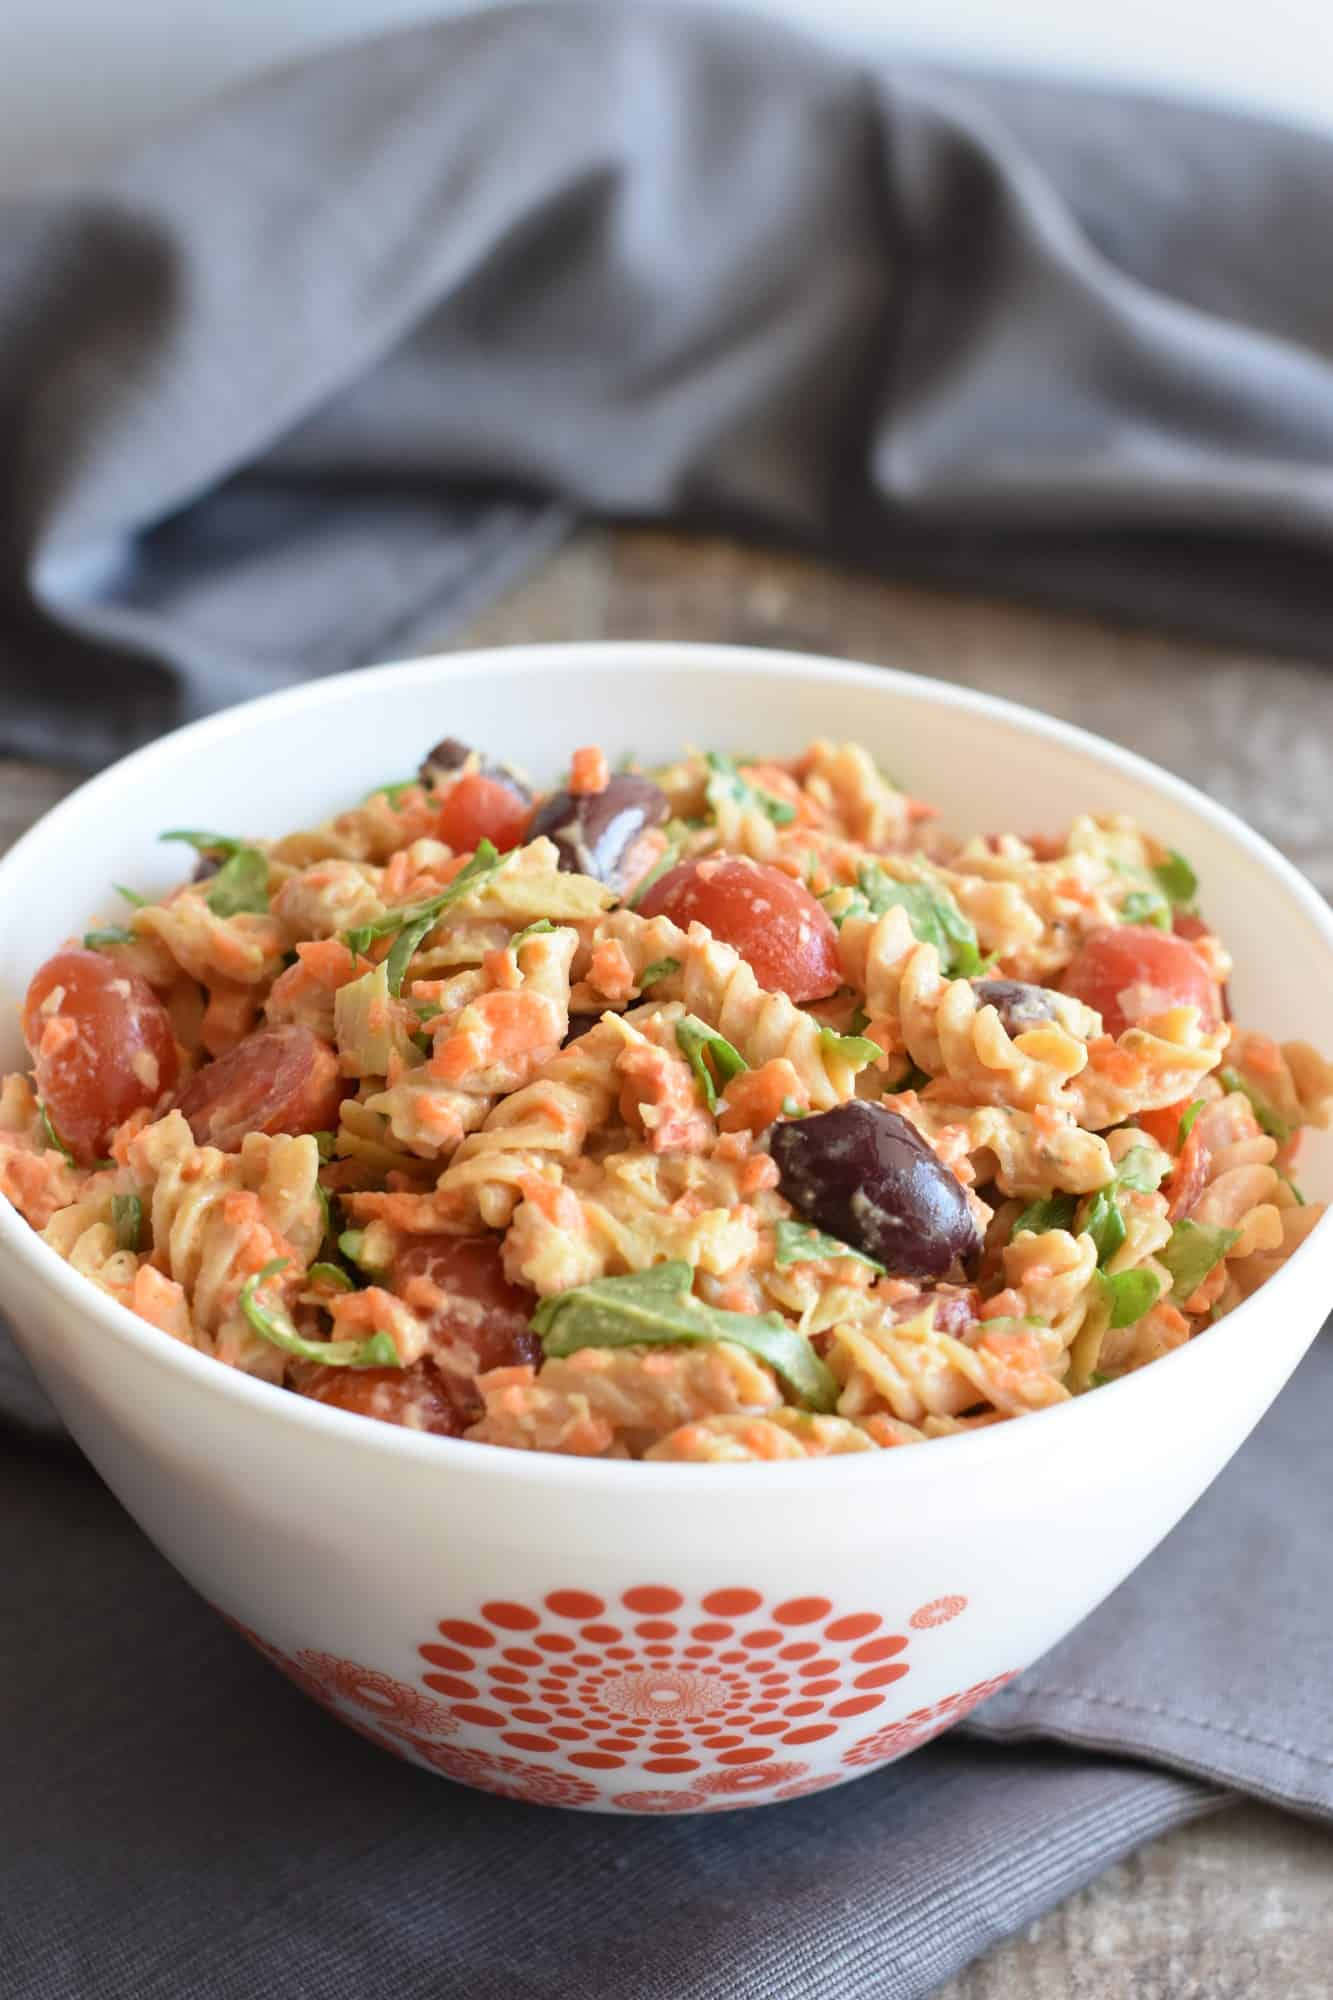 front view of pasta salad in a white bowl with red designs